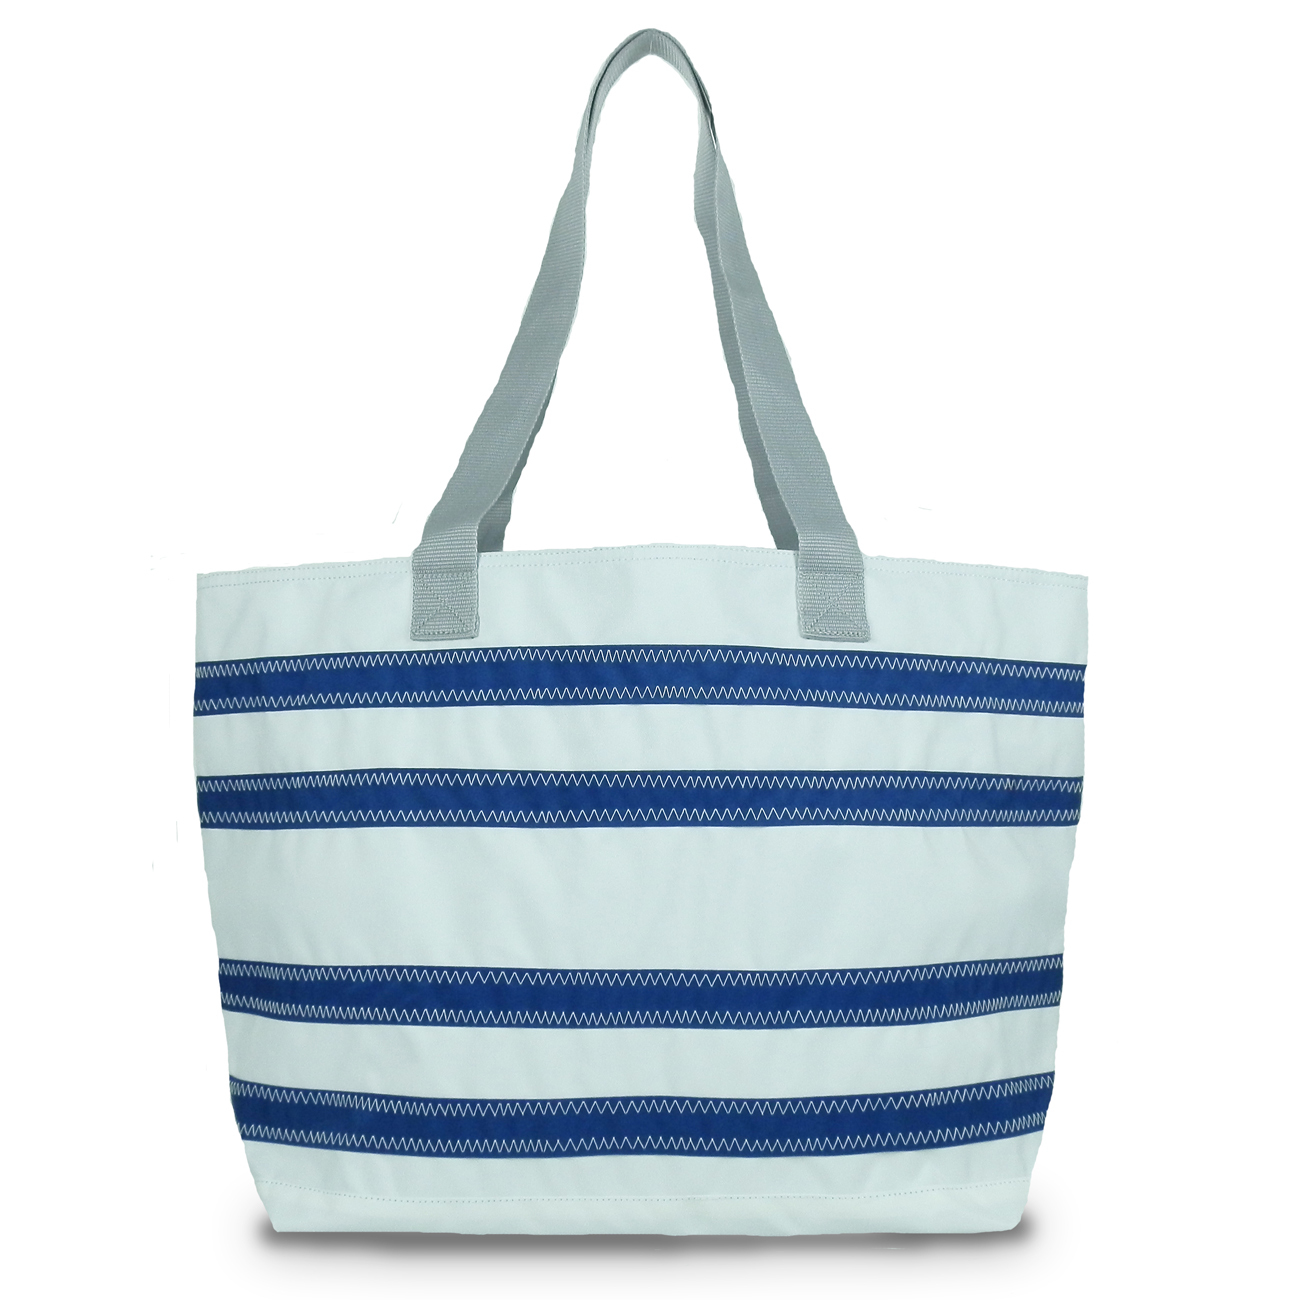 Stripe tote, Nautical tote, Beach shopper, Canvas shopper bag, Vegan beach tote